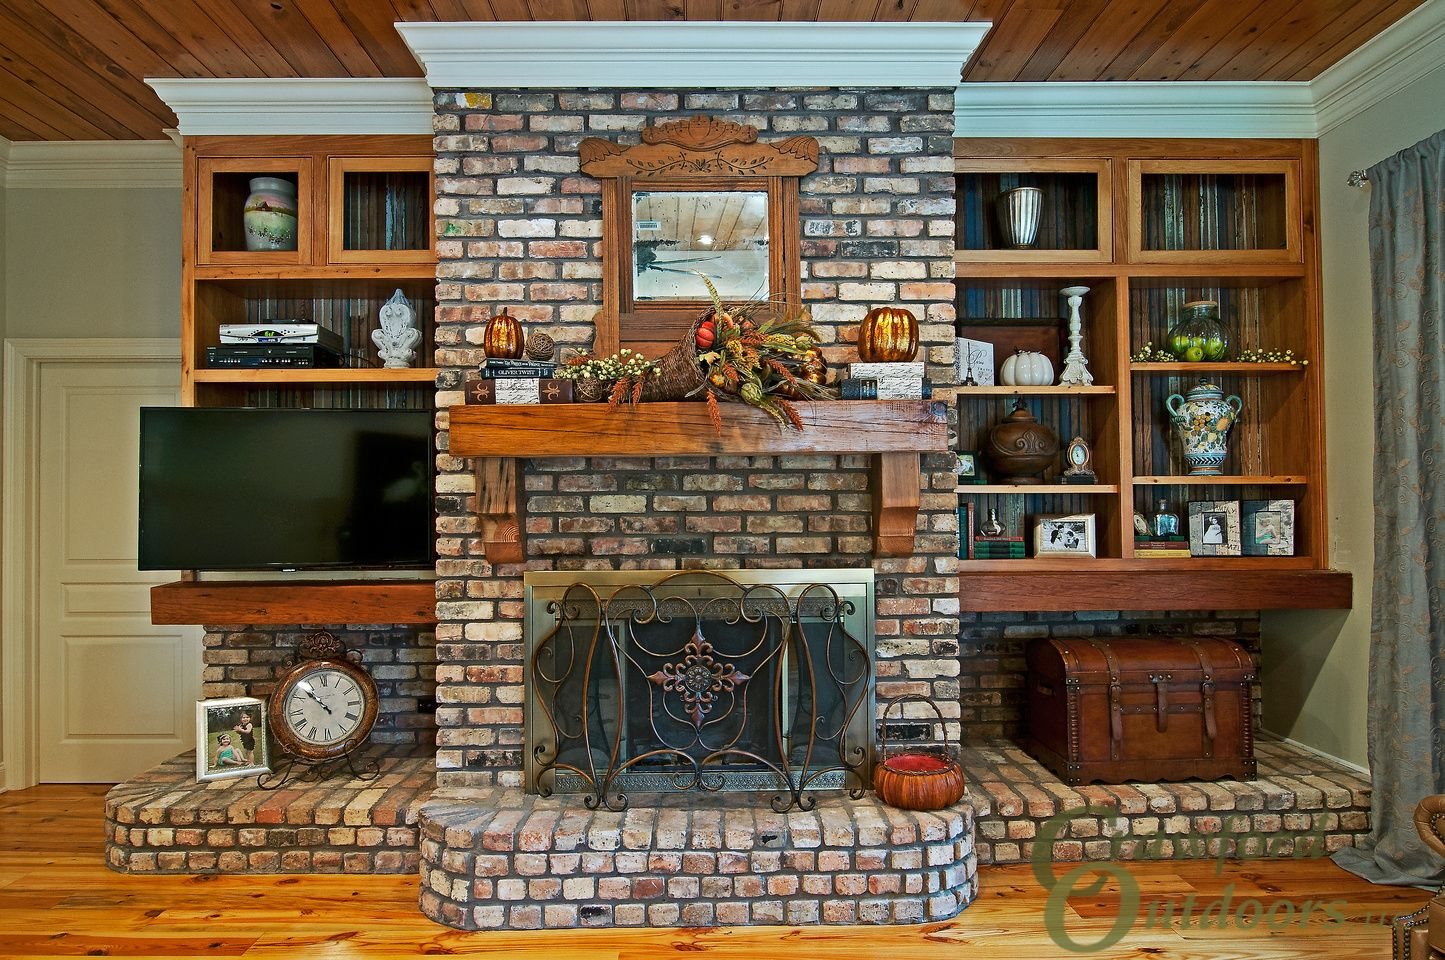 Couchtisch Holmes Alysha Holmes Remodeling Living Room Fireplace Book Shelves